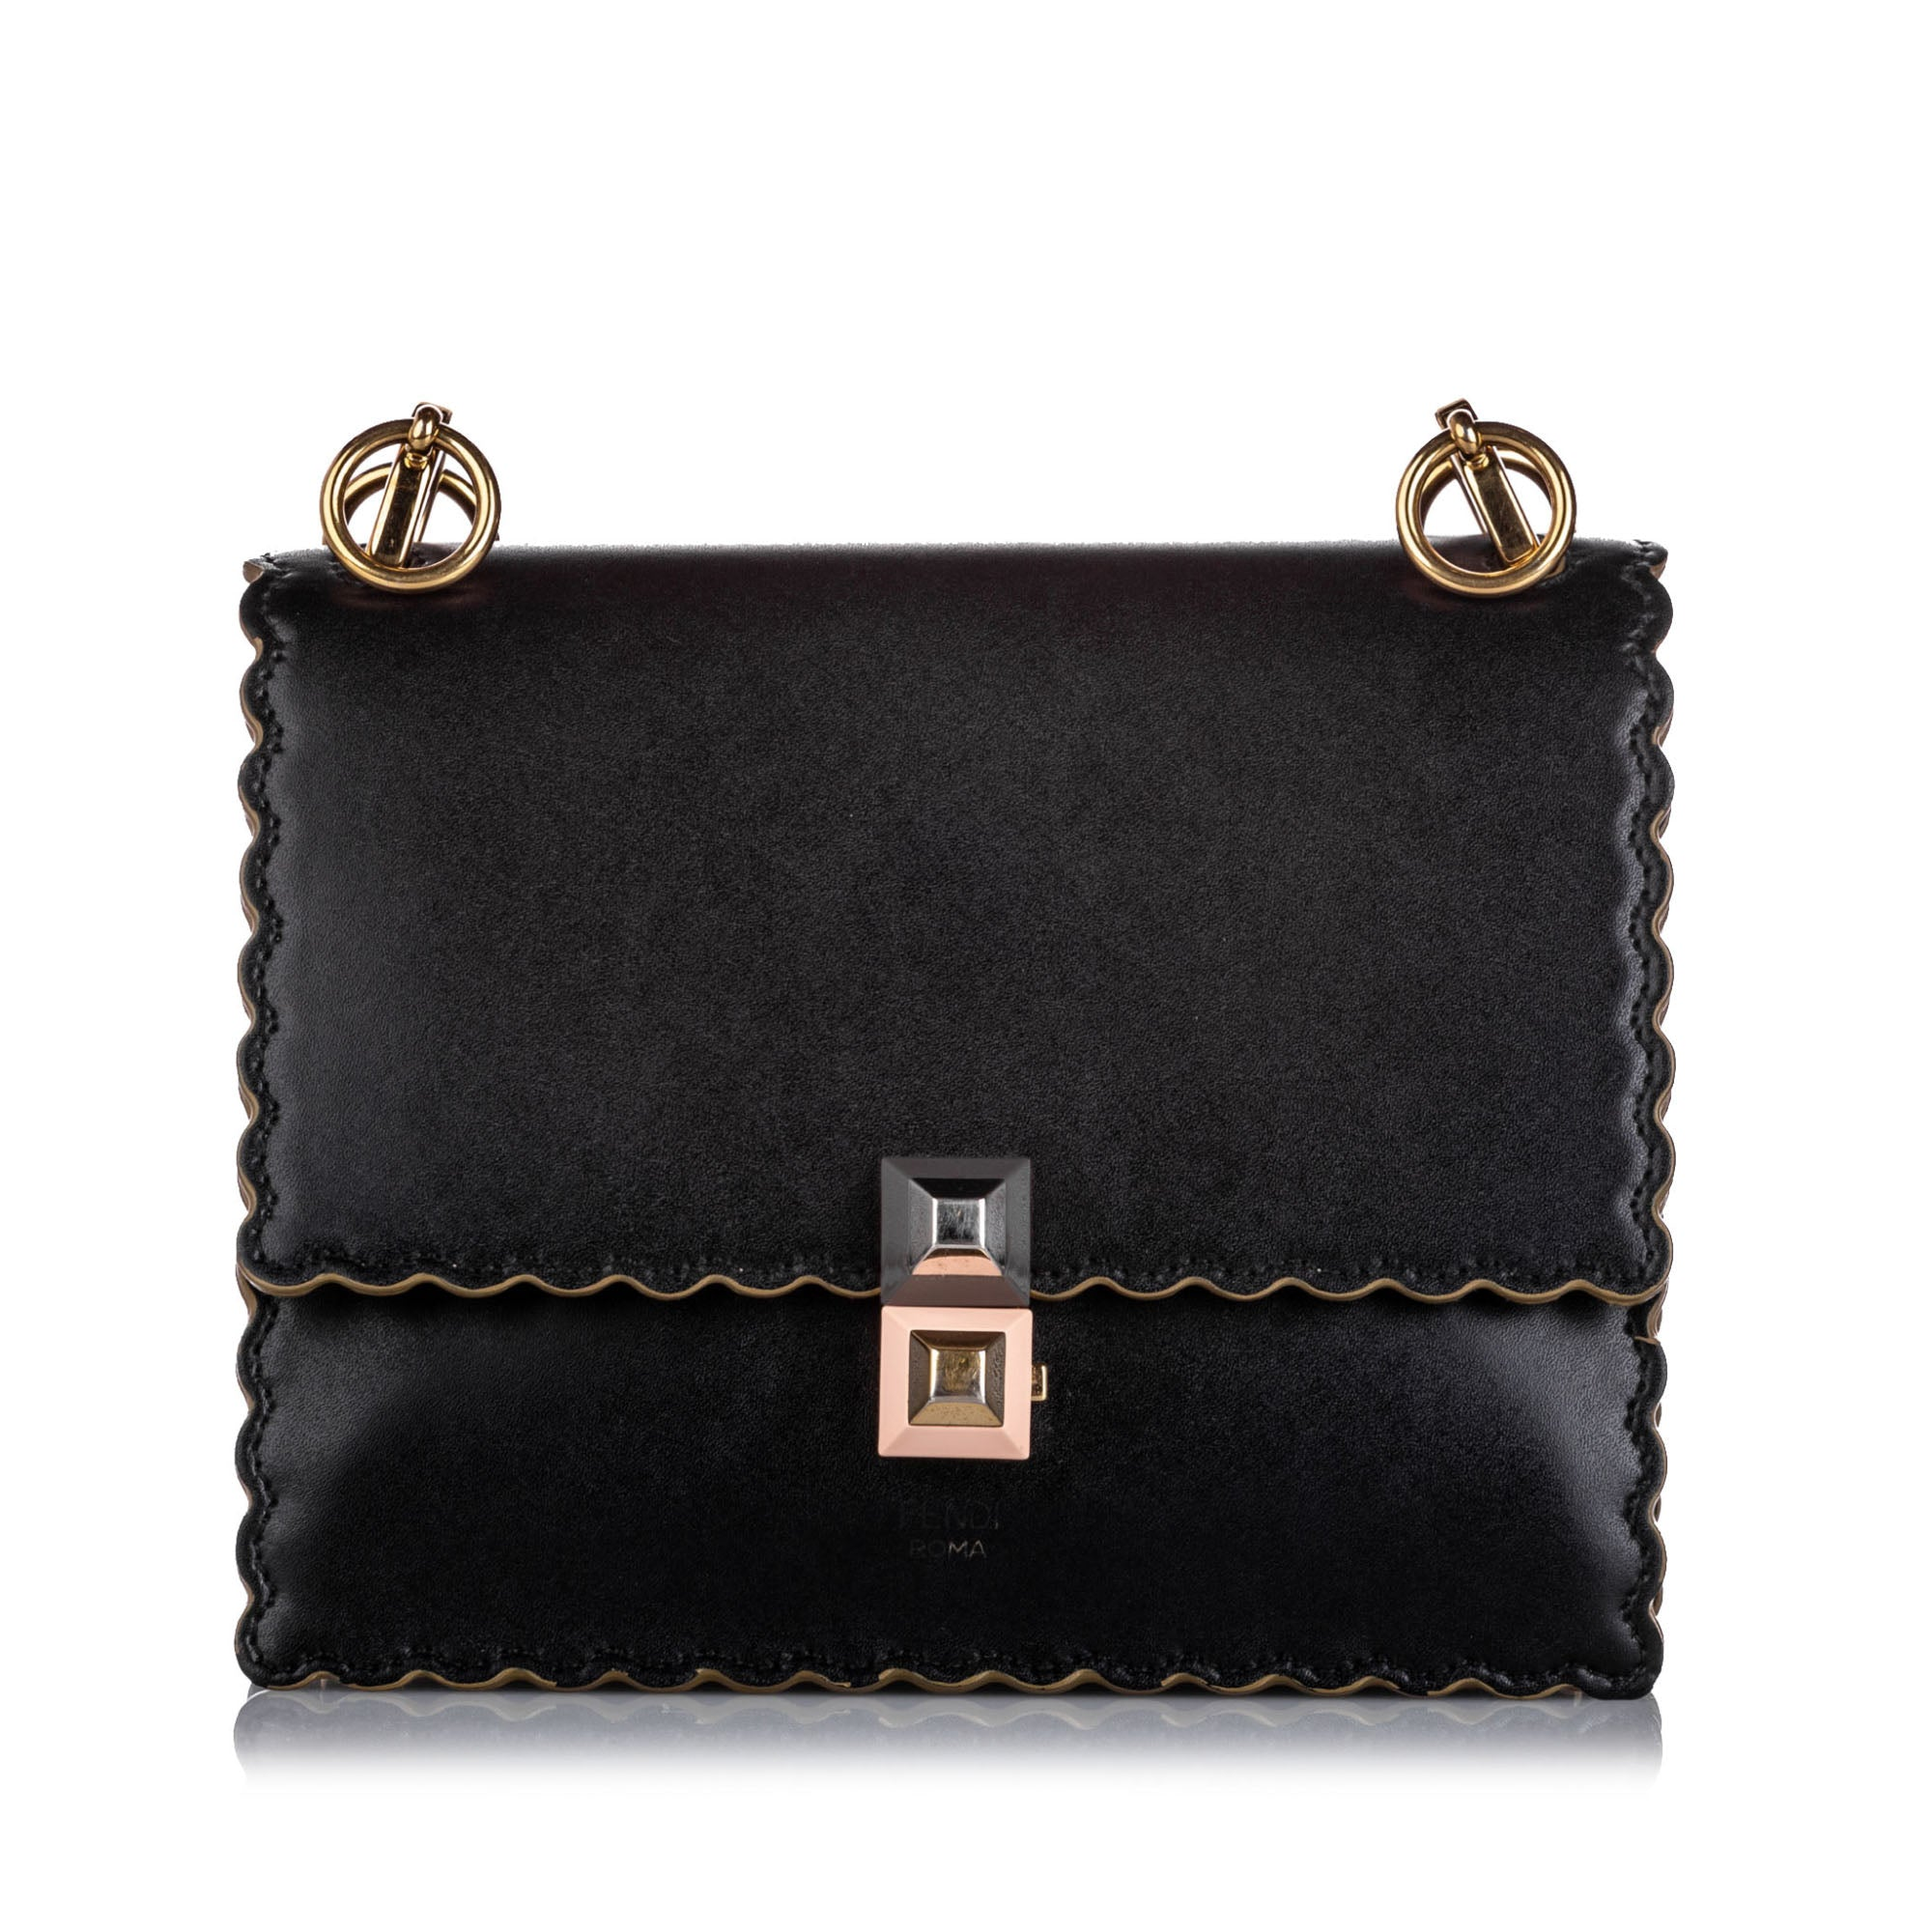 Fendi Black Kan I Leather Shoulder Bag